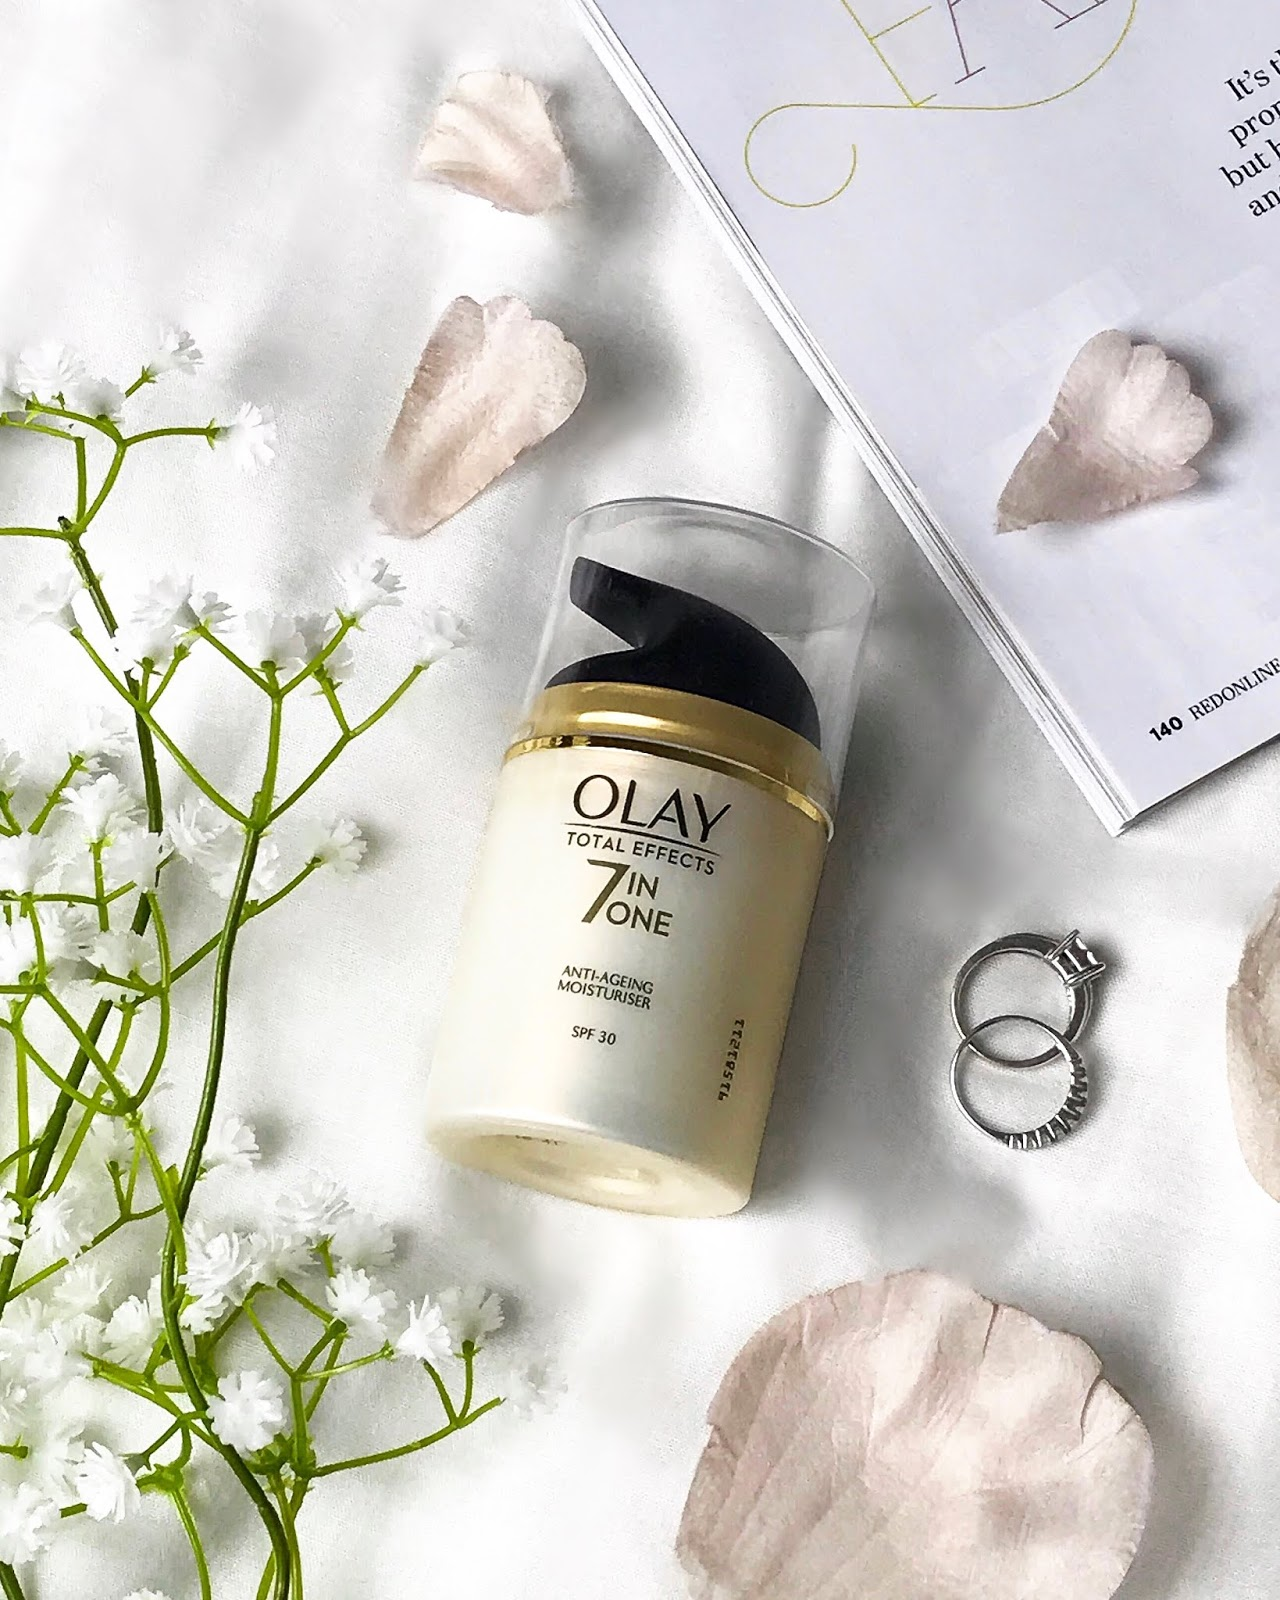 olay total effects age defying moisturiser spf 30 blog post